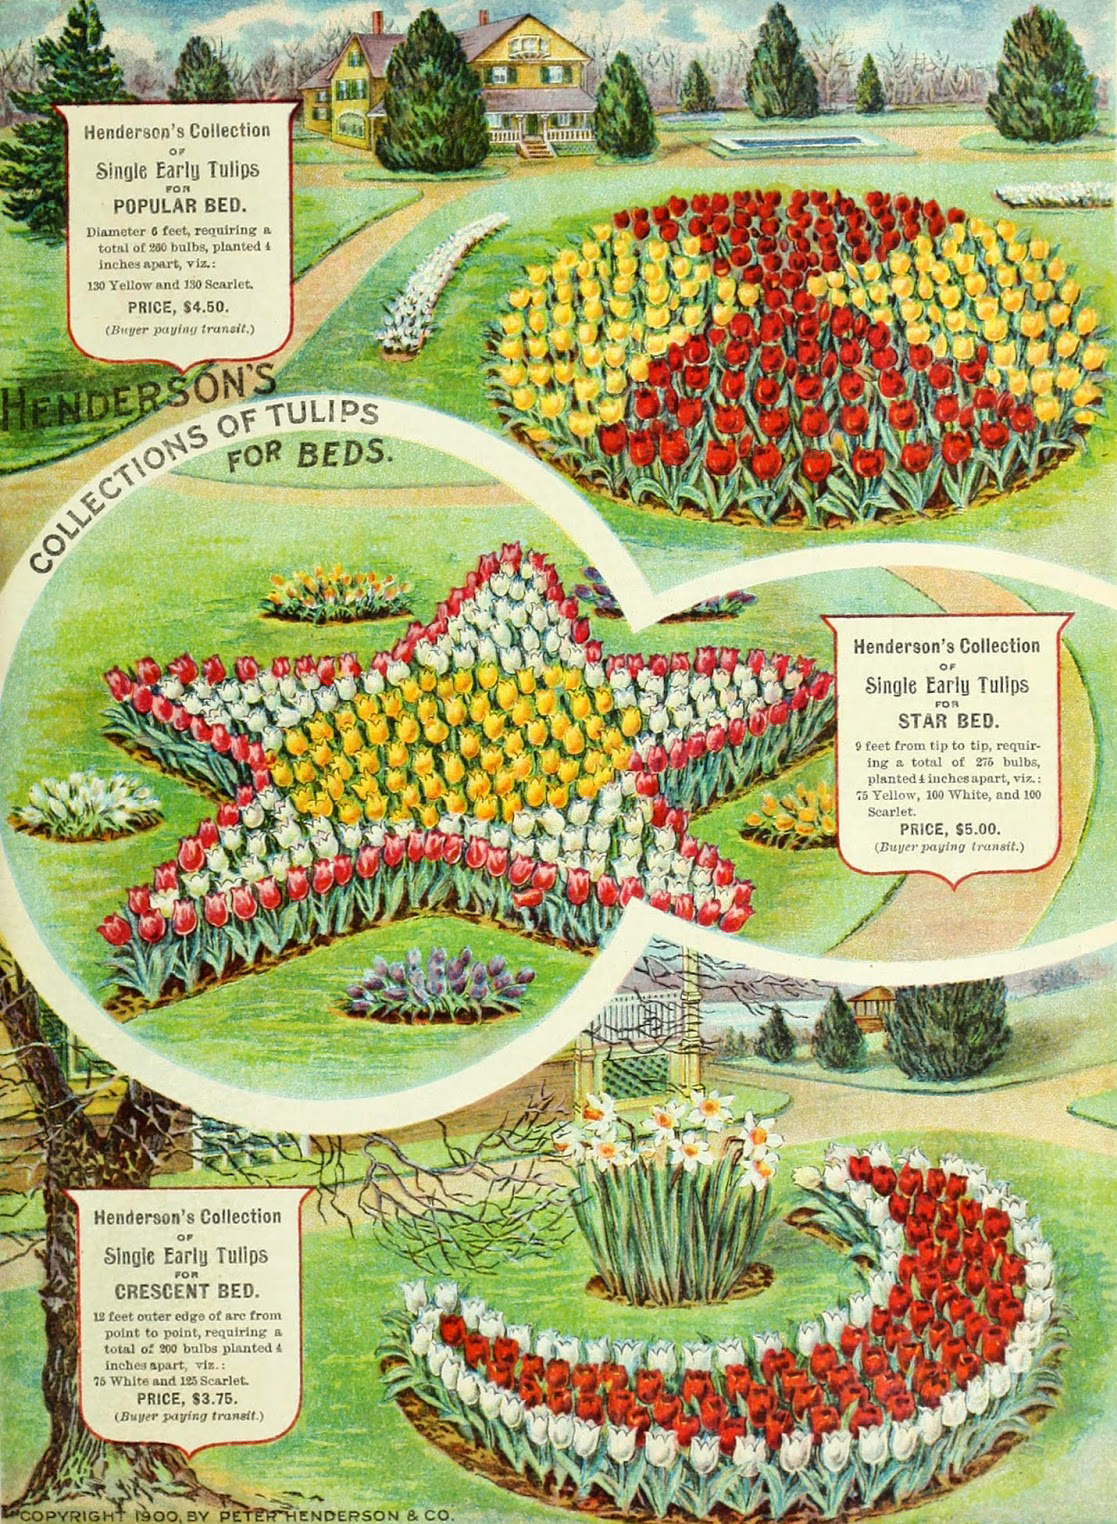 From Peter Henderson & Co., 1900. A perfect example of the trendy marketing that sprung from the popularity of the seed industry.